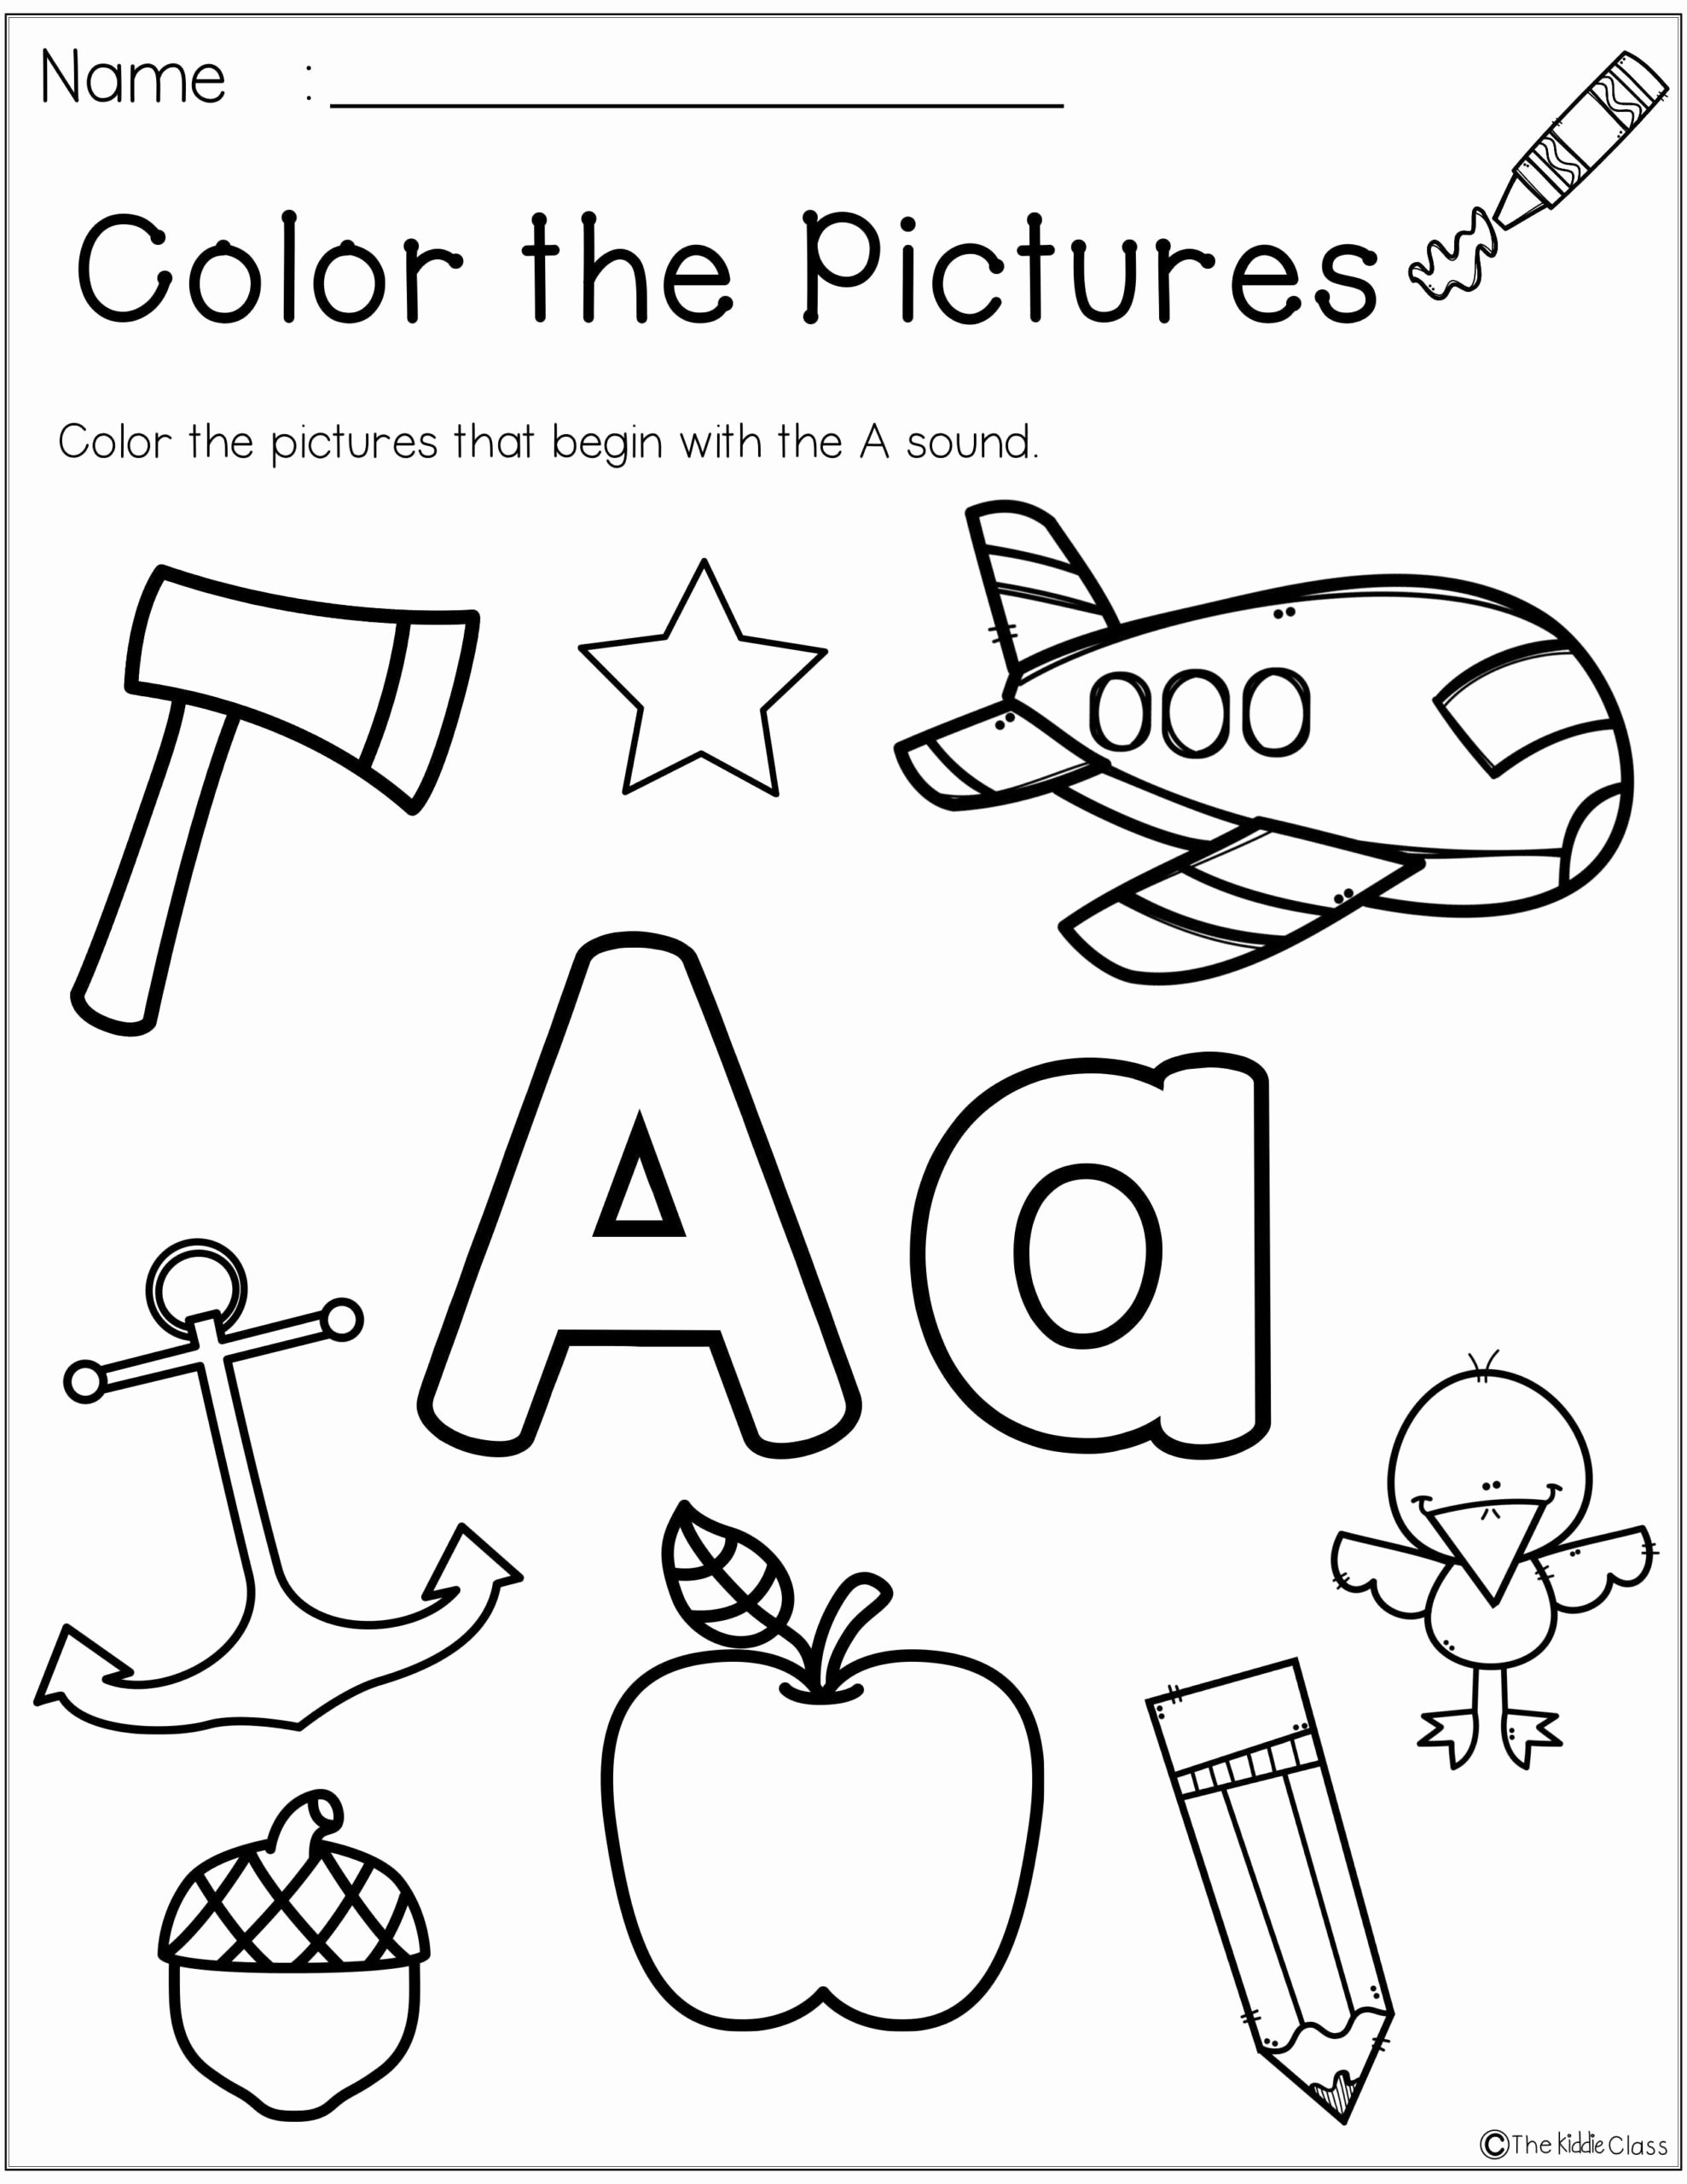 Free Printable Learning Worksheets for Preschoolers Free Worksheets Learning Mat Printable Calligraphy Worksheets